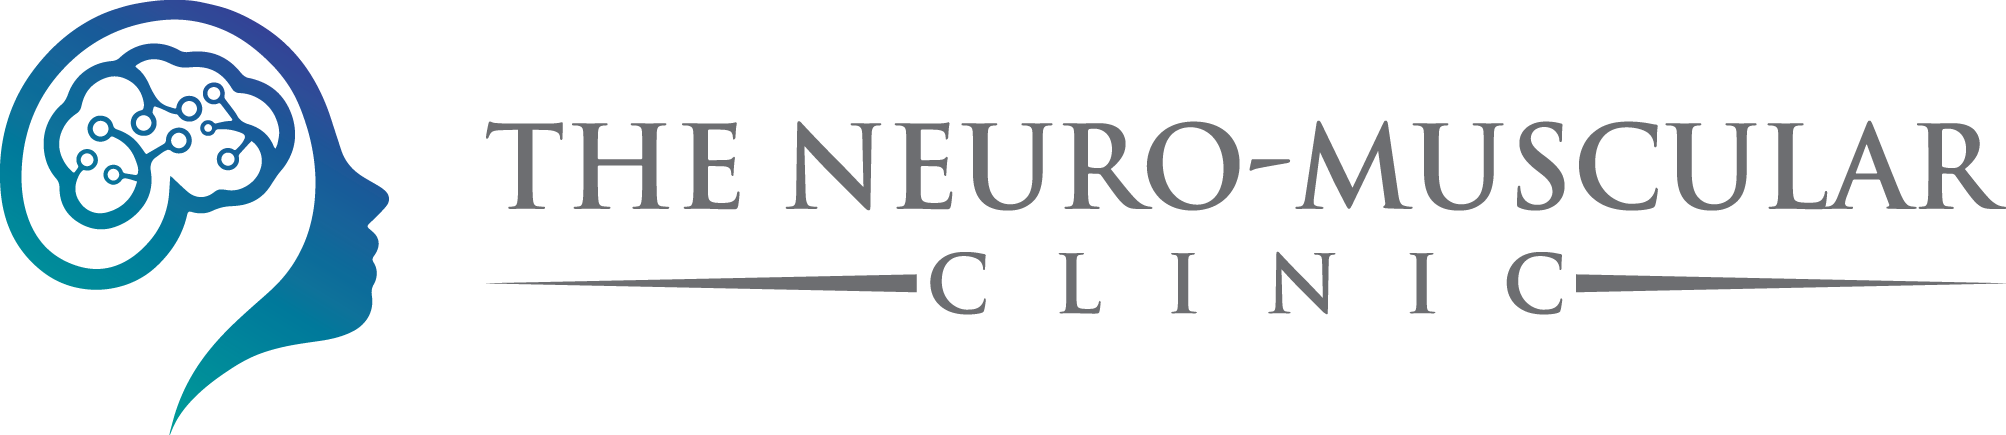 Neuro-muscular Chiropractor specialised in dizziness, chiropractic in Woking